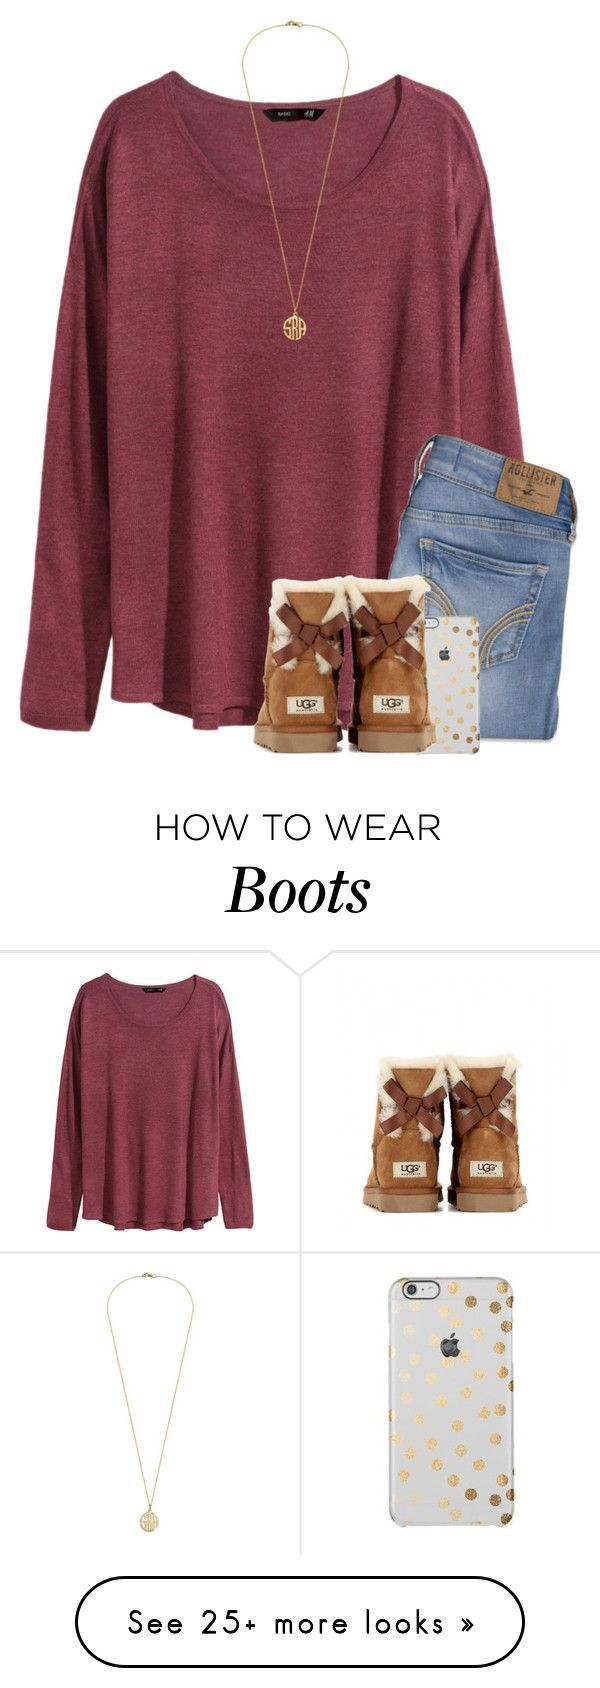 """""""Ugg boots make every outfit better❤️"""" by savanahe on Polyvore featuring H&M, Hollister Co., UGG Australia, women's clothing, women's fashion, women, female, woman, misses and juniors"""